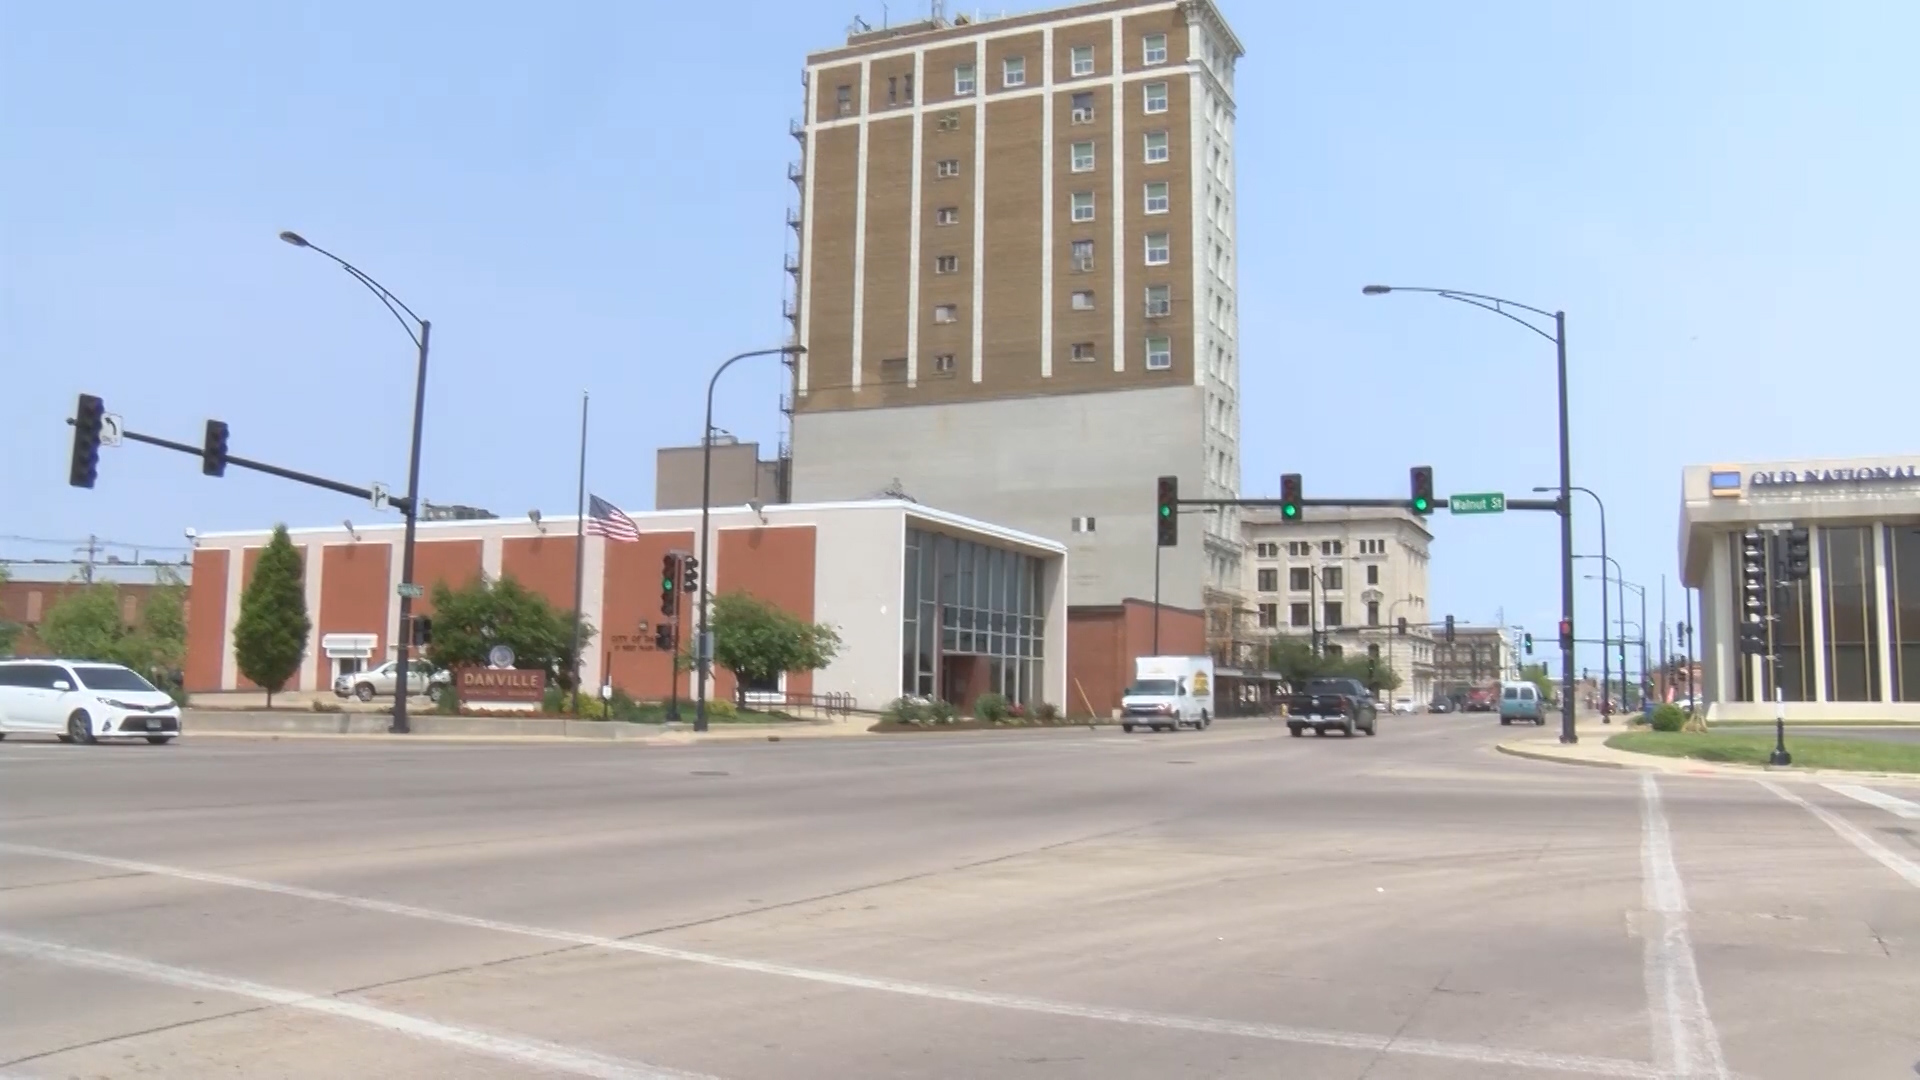 Officials share thoughts on possible casinos in Danville, IL